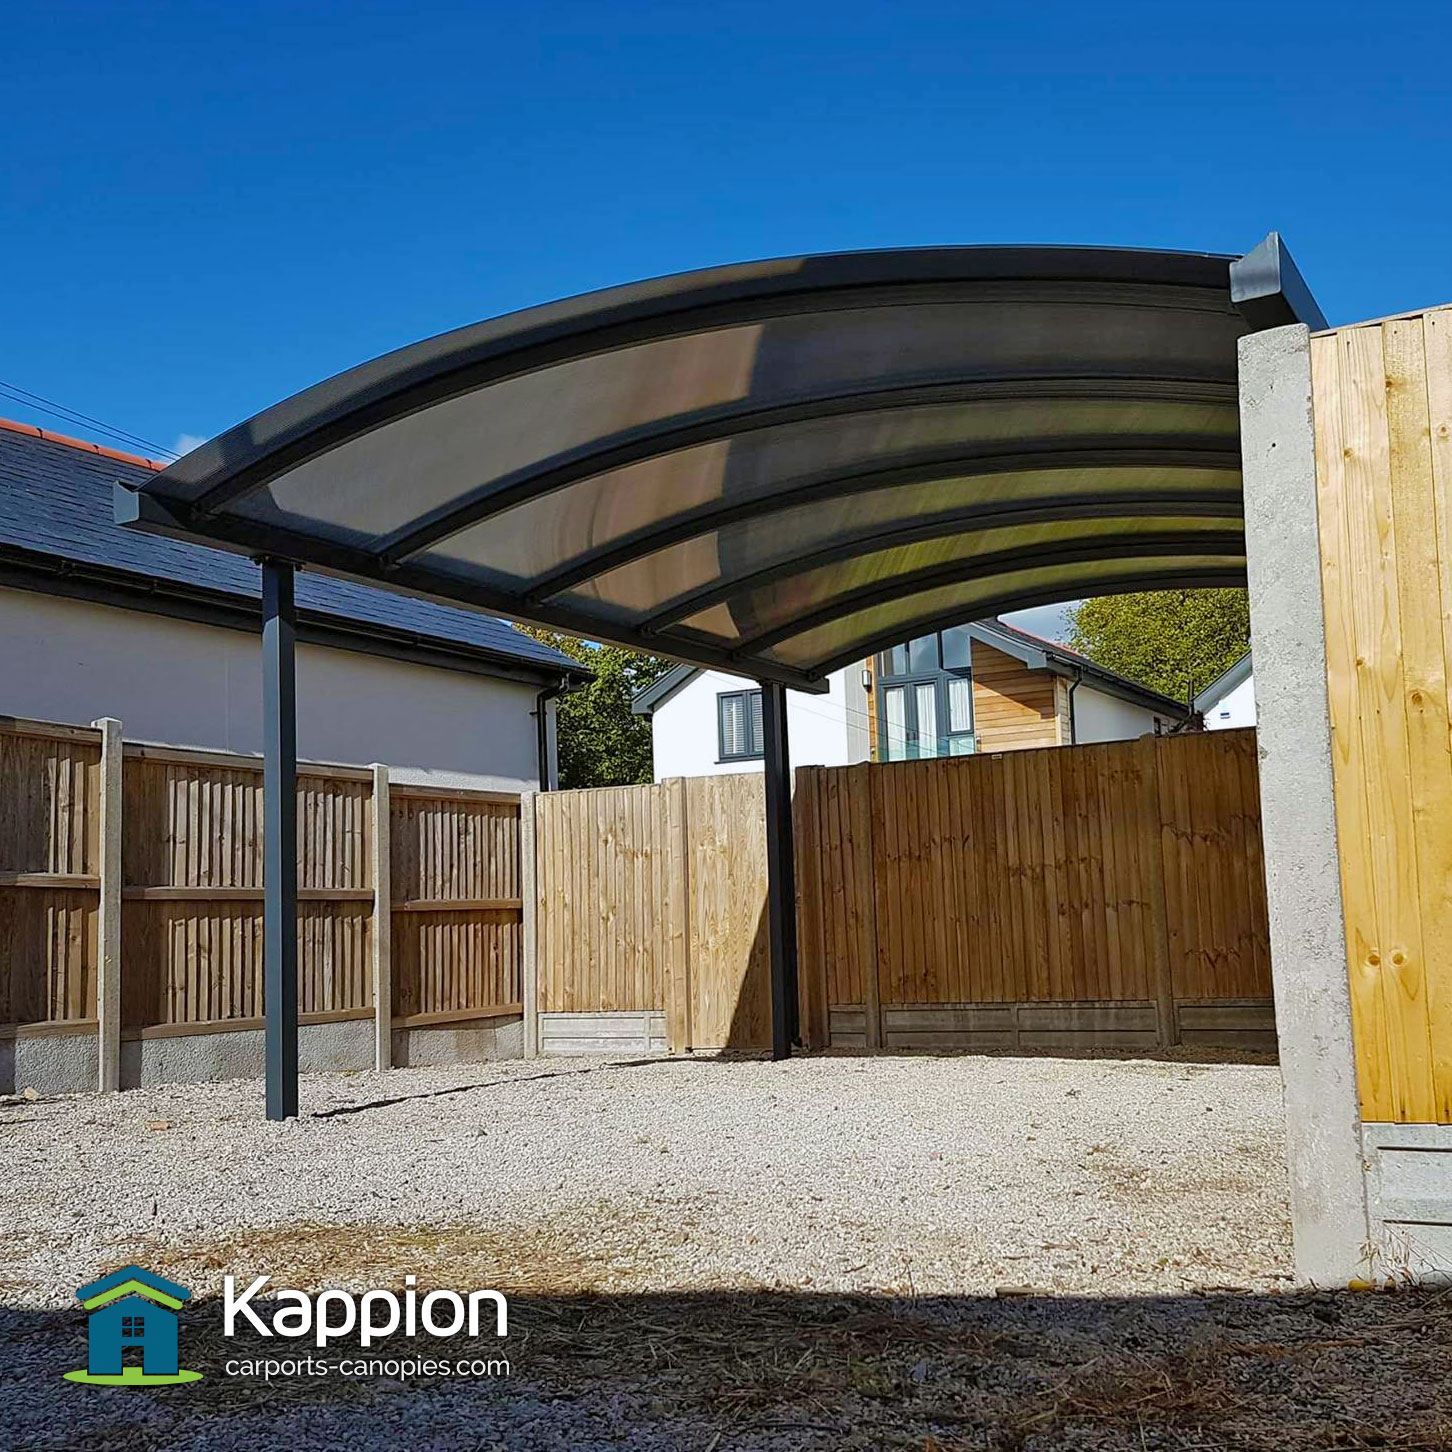 Canopies And Carports : Carport installed in whitstable kappion carports canopies